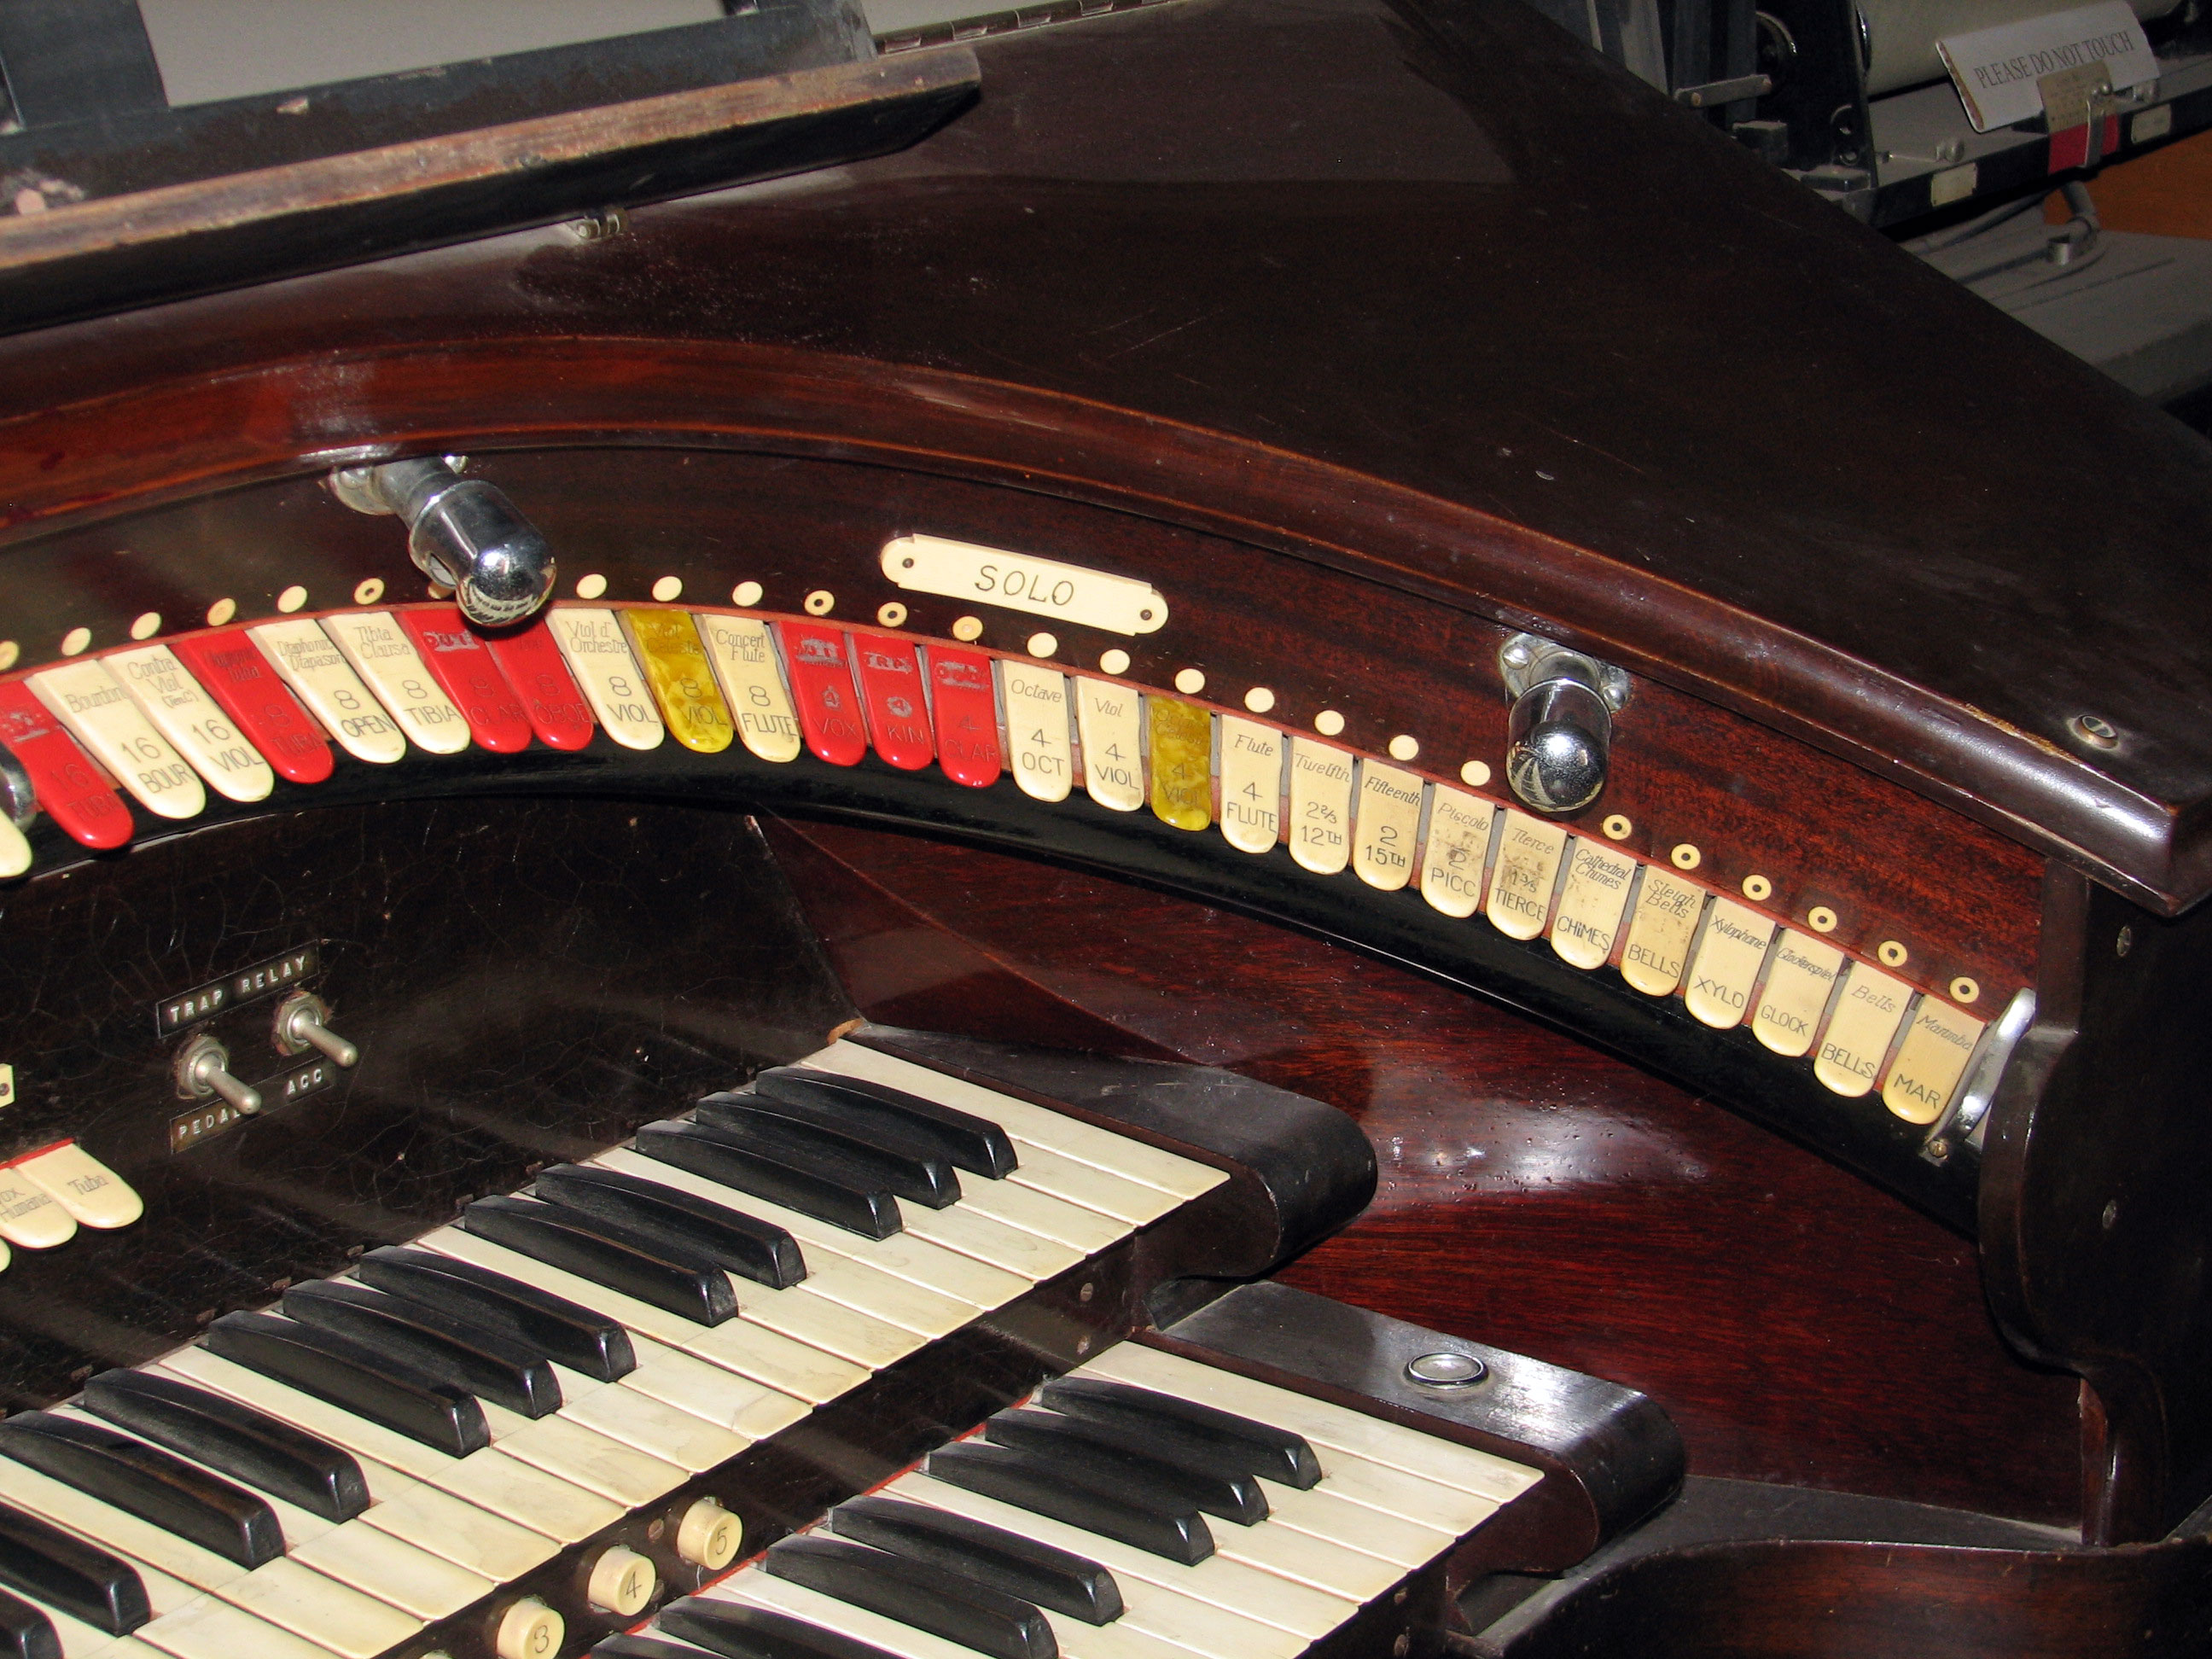 Click here to download a 2592 x 1944 JPG image showing the right bolster of the 2/9 Mighty WurliTzer Style F console.